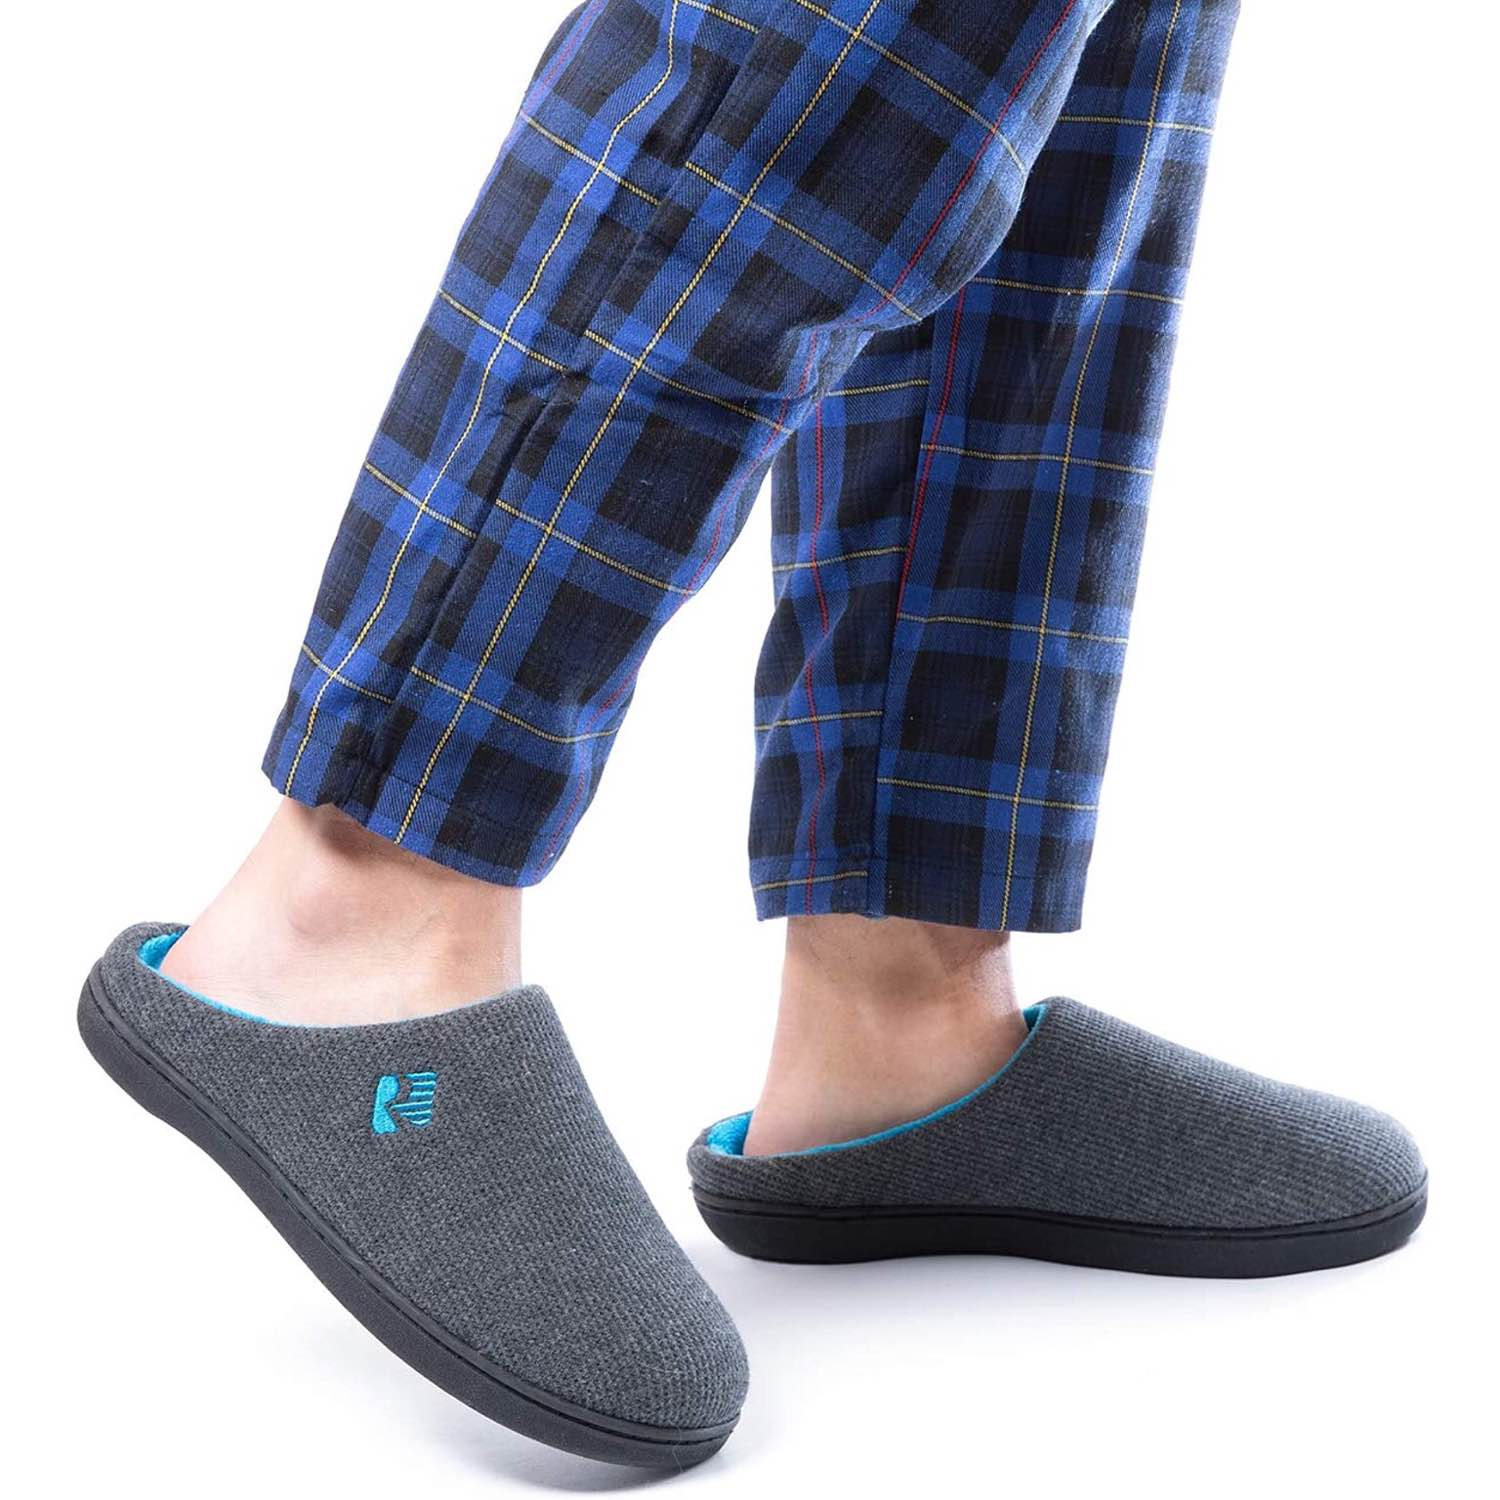 rockdove-memory-foam-slippers-2